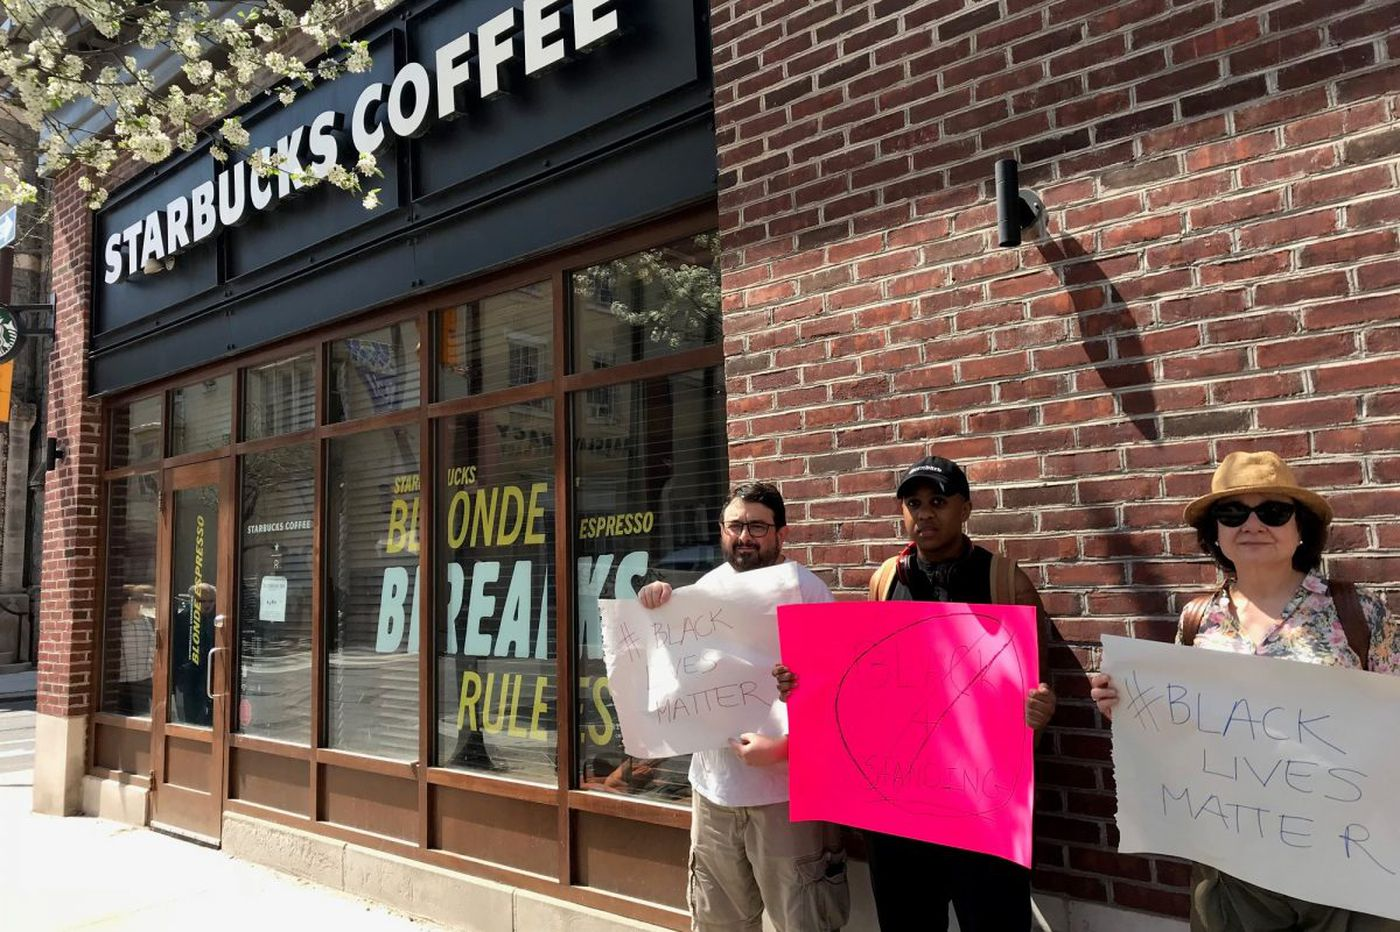 Black men's arrests at Philadelphia Starbucks prompt city probes amid national outcry